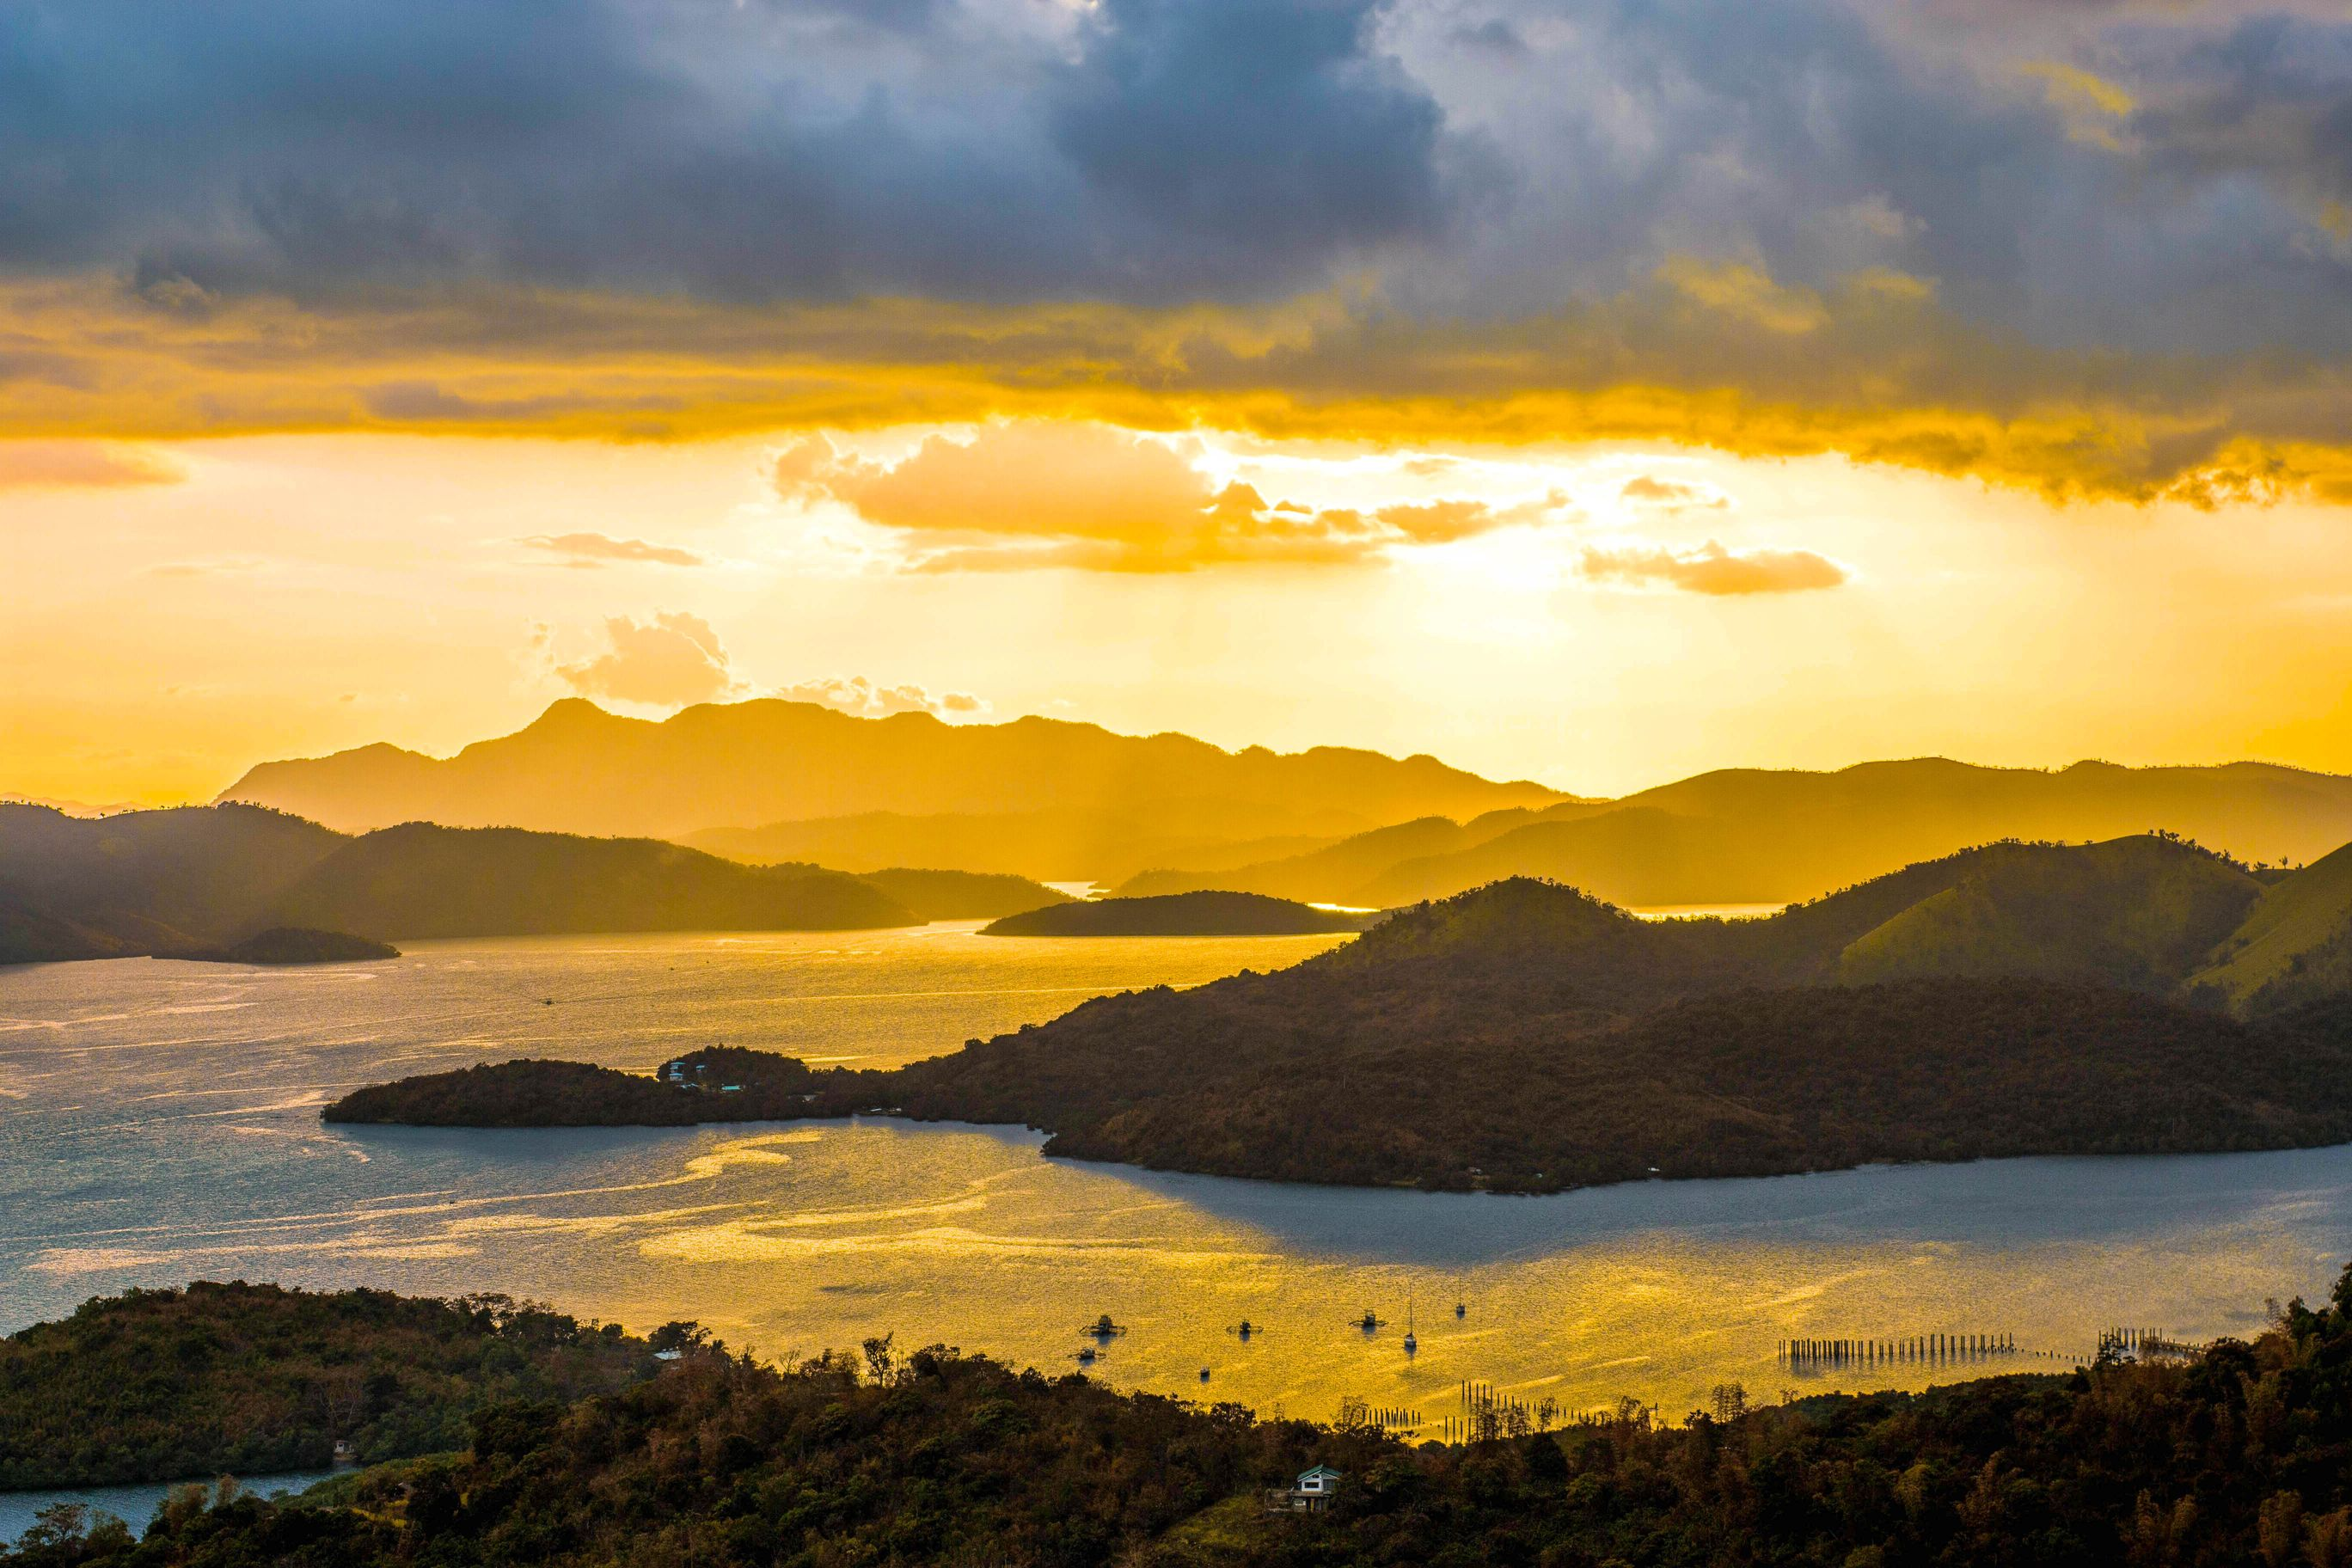 Sun setting over bays, inlets, and islands in Coron, Philippines